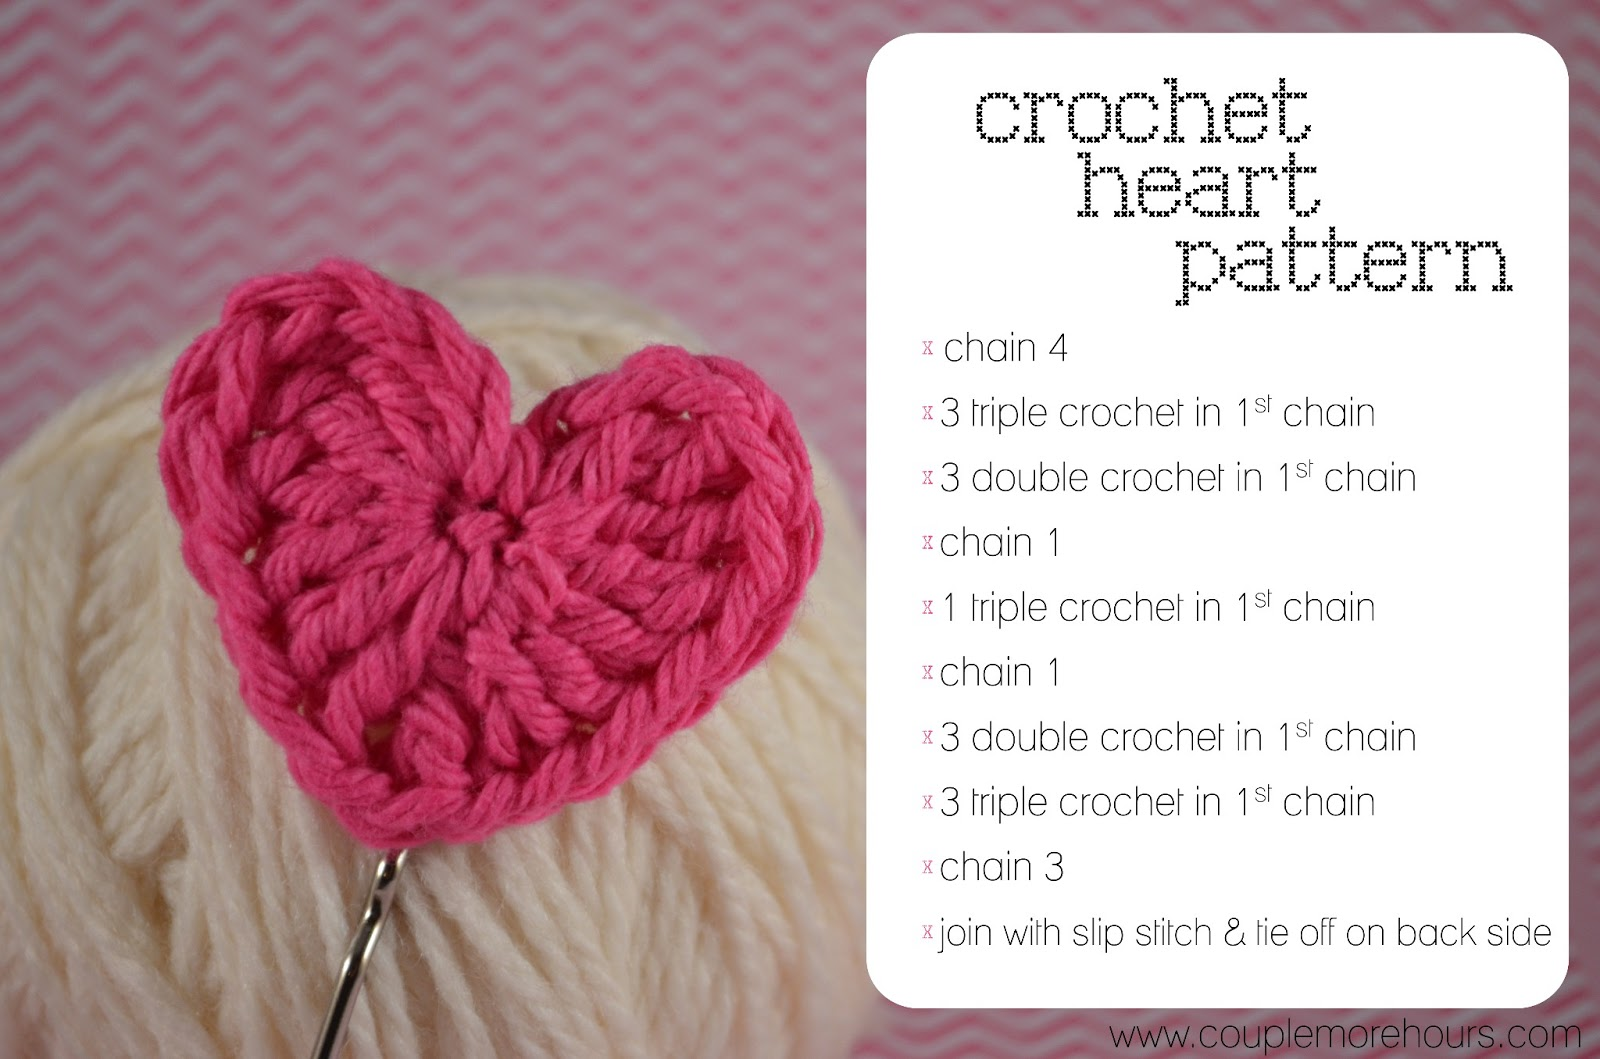 You can use any size crochet hook. I used a G hook on my hearts.